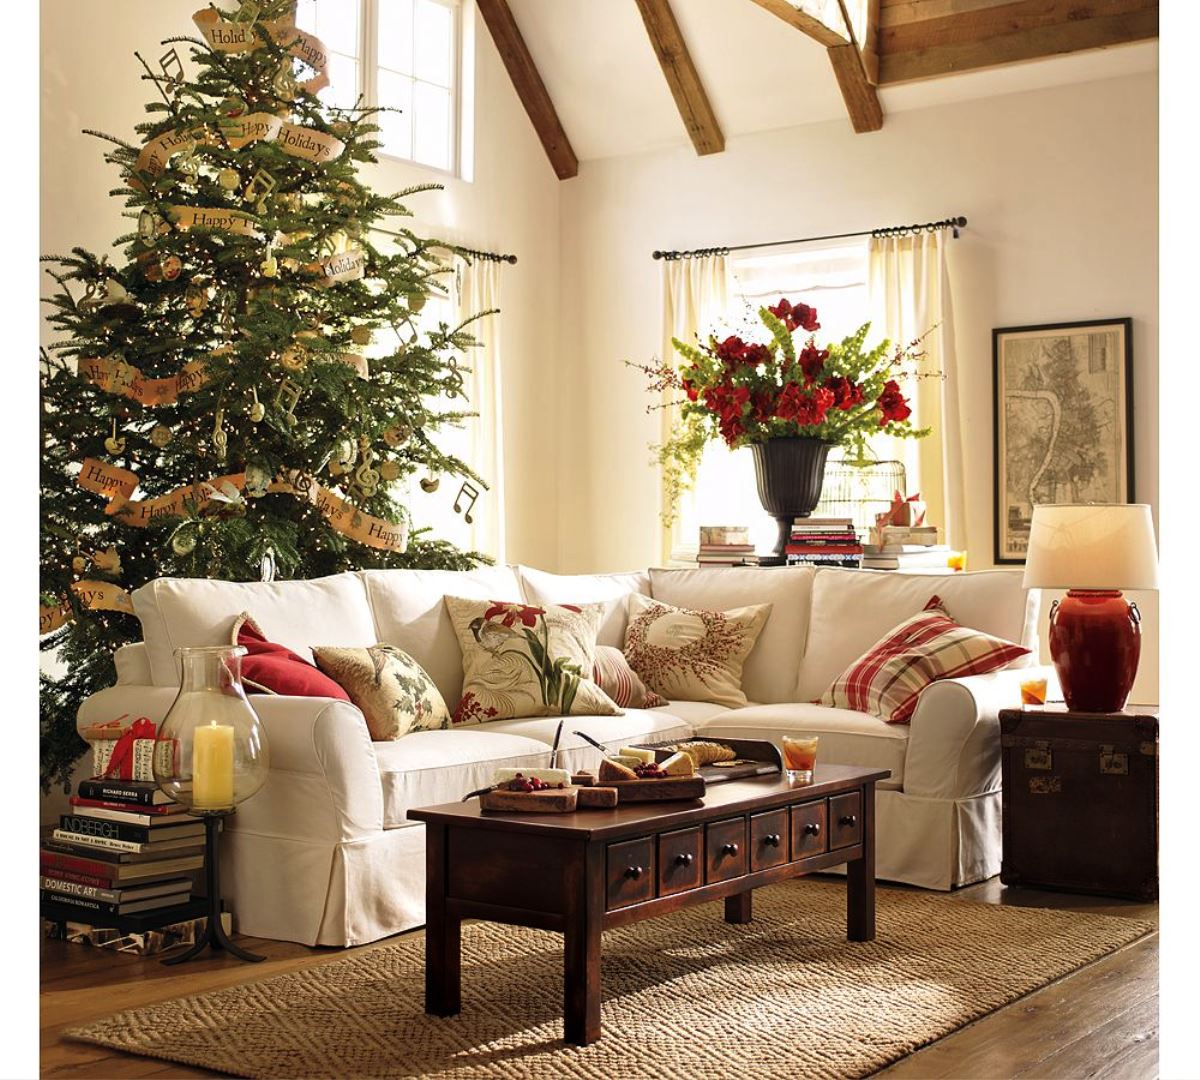 Decorating Ideas Elegant Living Rooms: 50 Stunning Christmas Decorations For Your Living Room